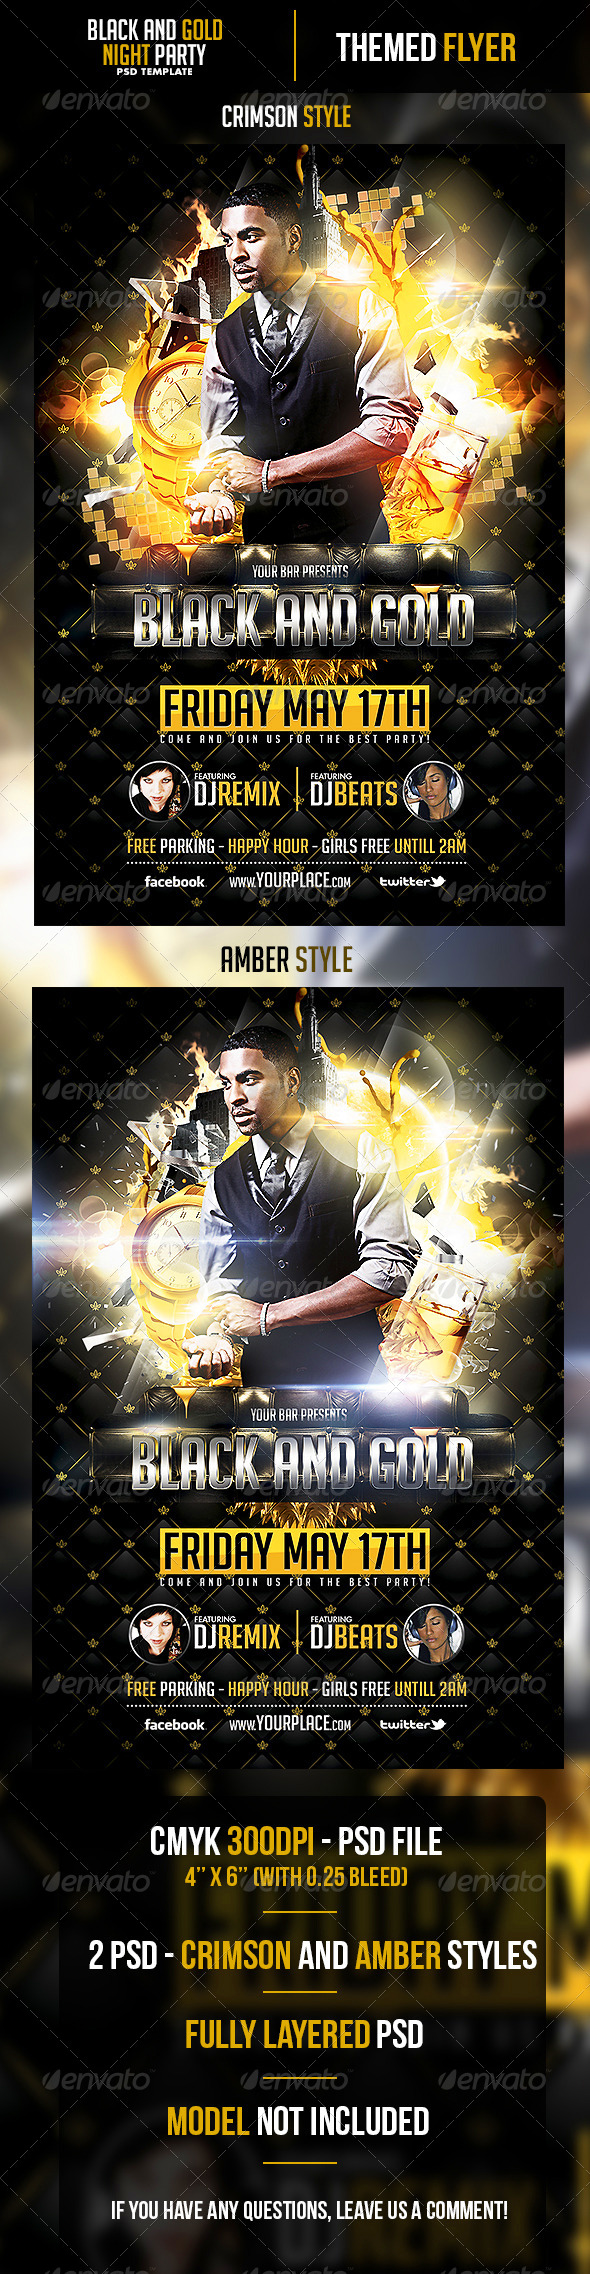 Black and Gold Night Flyer Template - Clubs & Parties Events